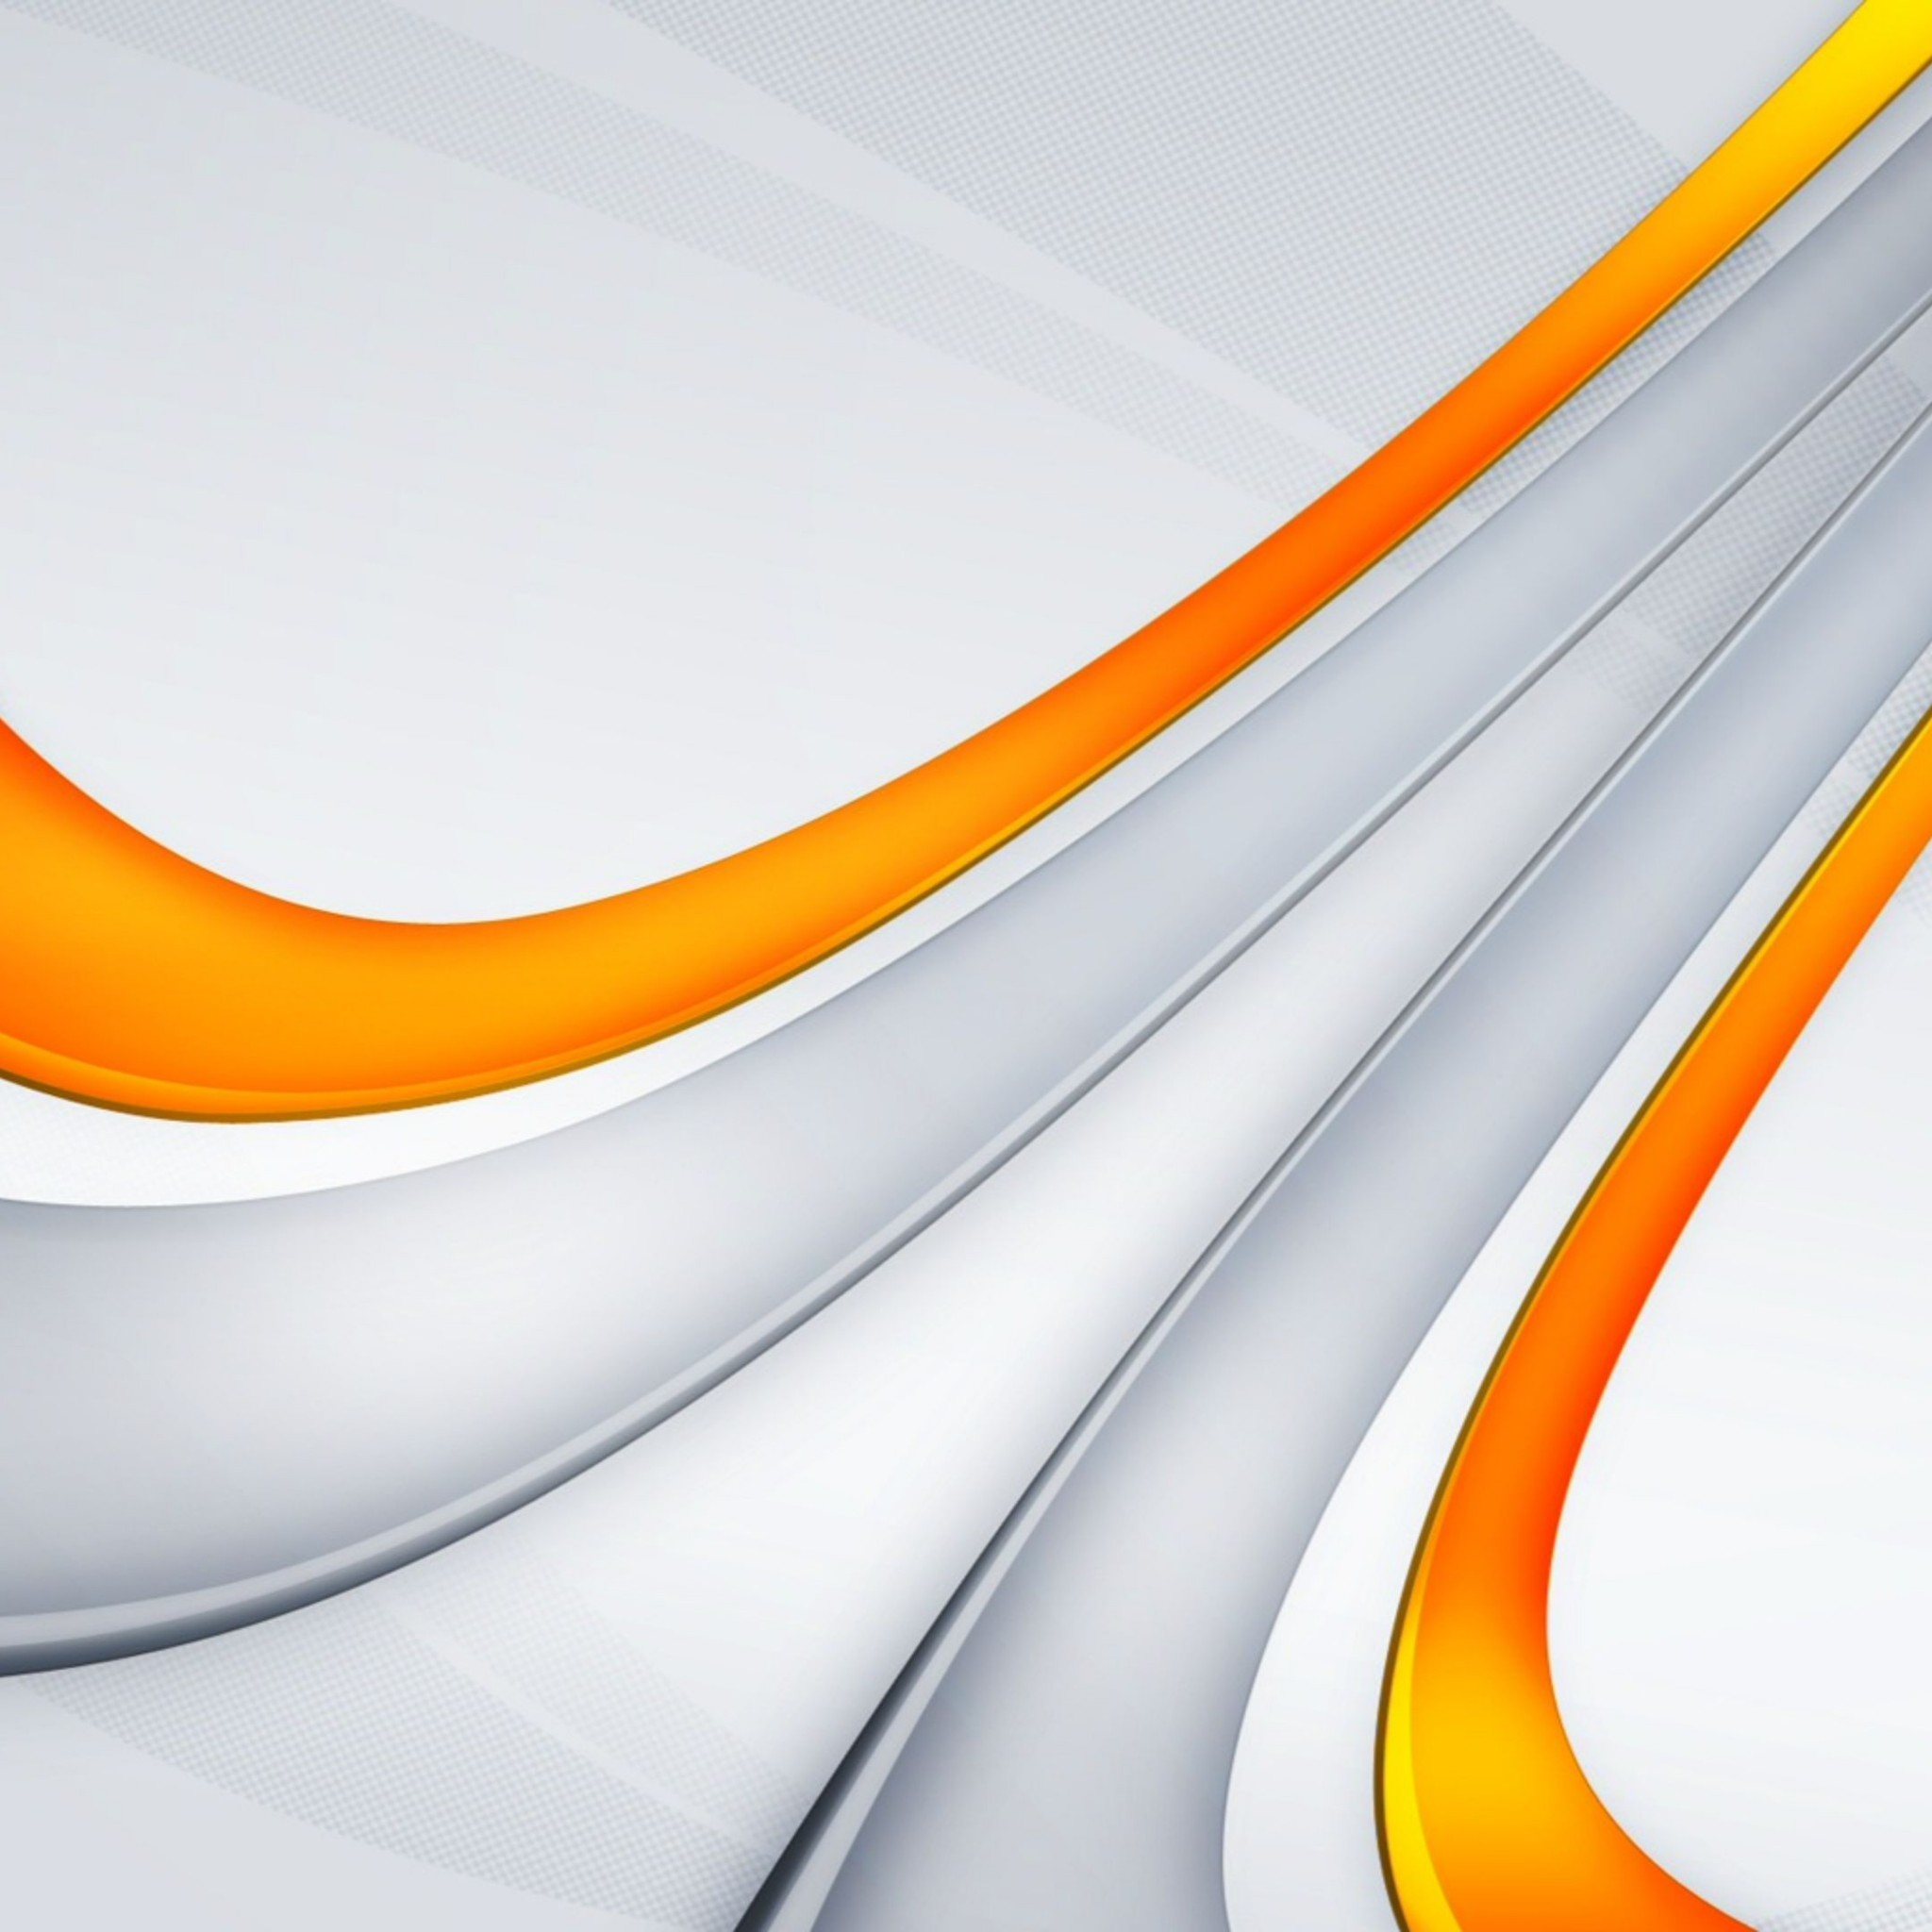 Abstract Orange Wallpaper (65+ Images